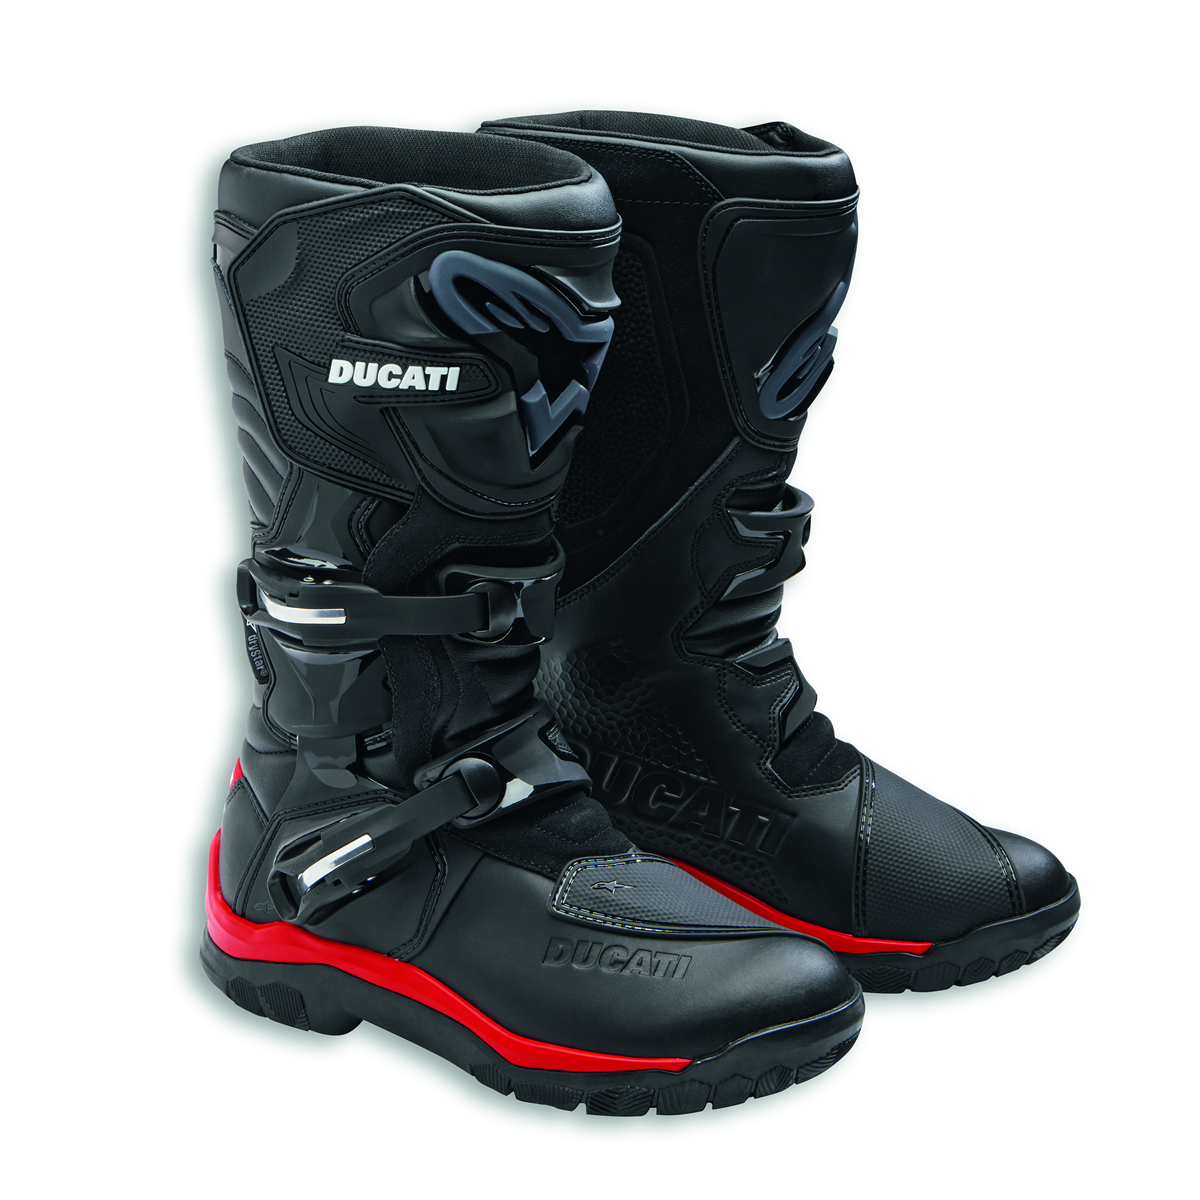 Atacama WP C1 - Touring-Adventure Boots 981049070